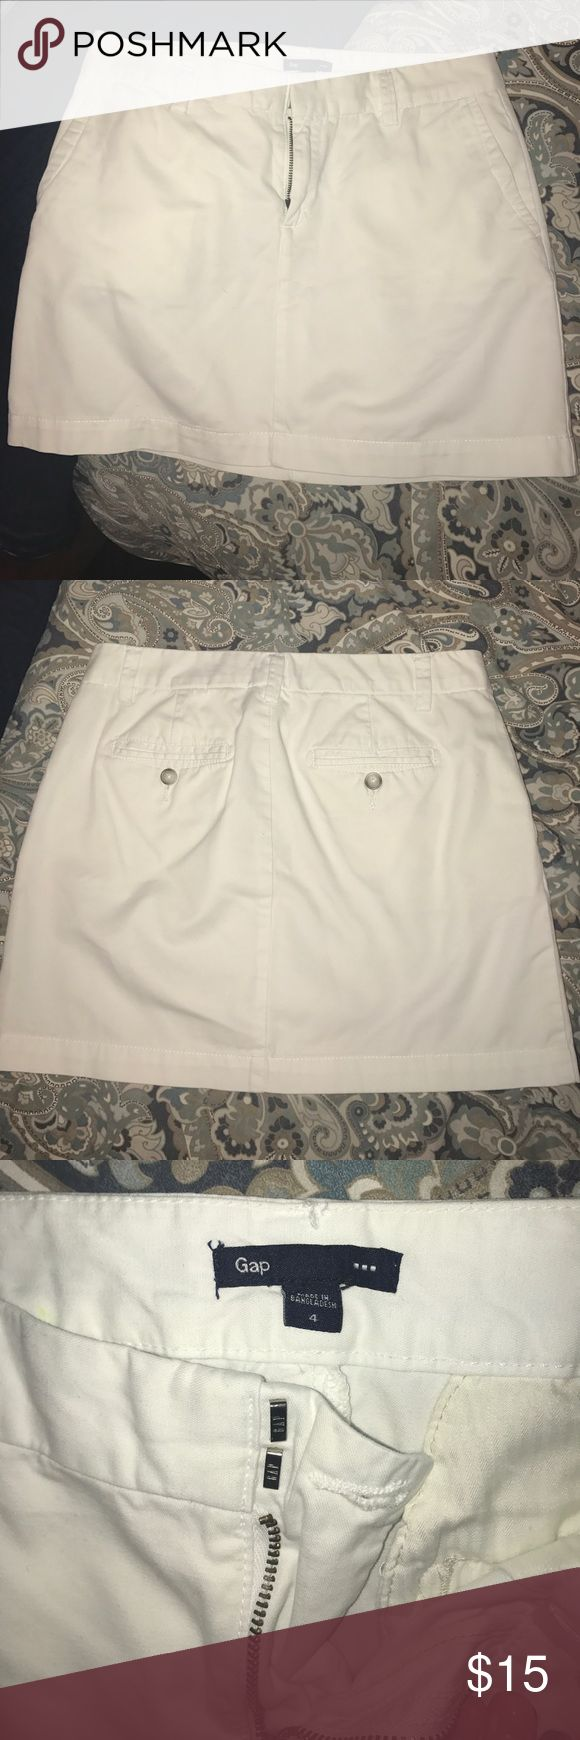 White Gap mini skirt, super sexy! Show off those legs! This white Gap mini skirt is in excellent condition, no flaws GAP Skirts Mini